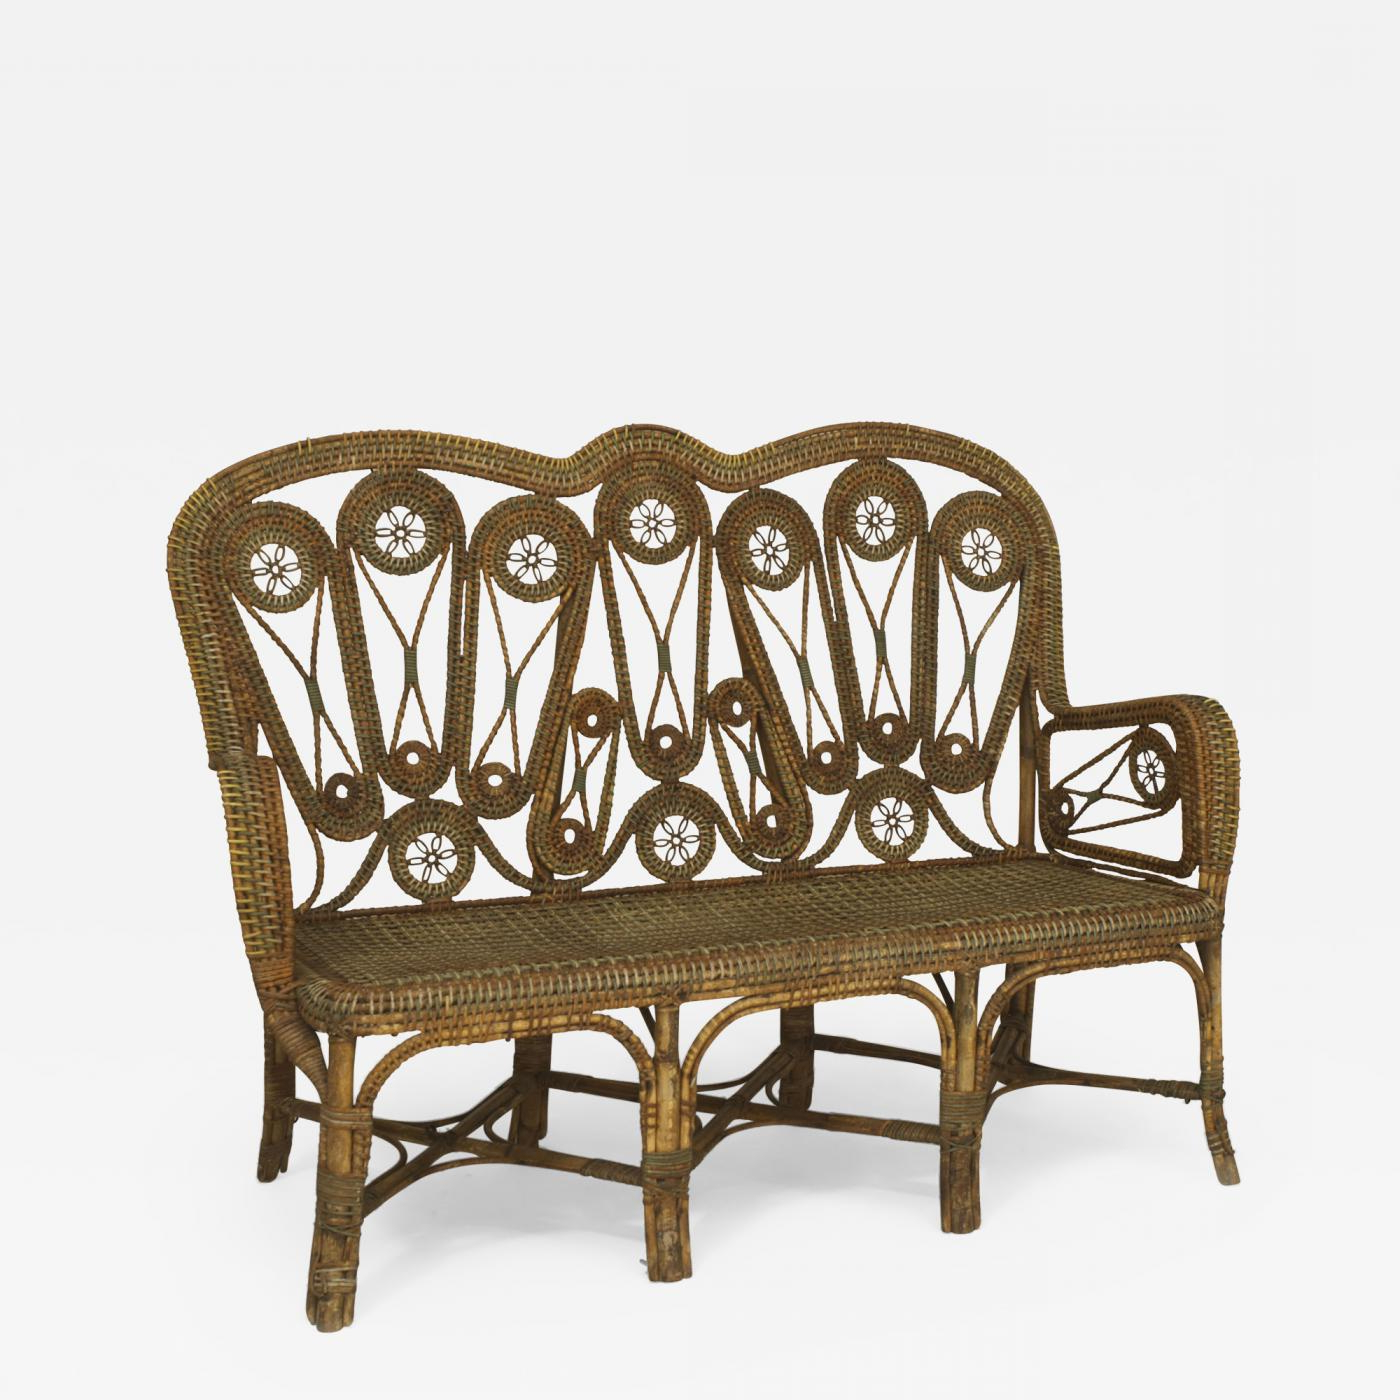 Wicker Loveseats Pertaining To Most Recent Perret Et Vibert – French Victorian Natural Wicker Loveseats (View 12 of 20)